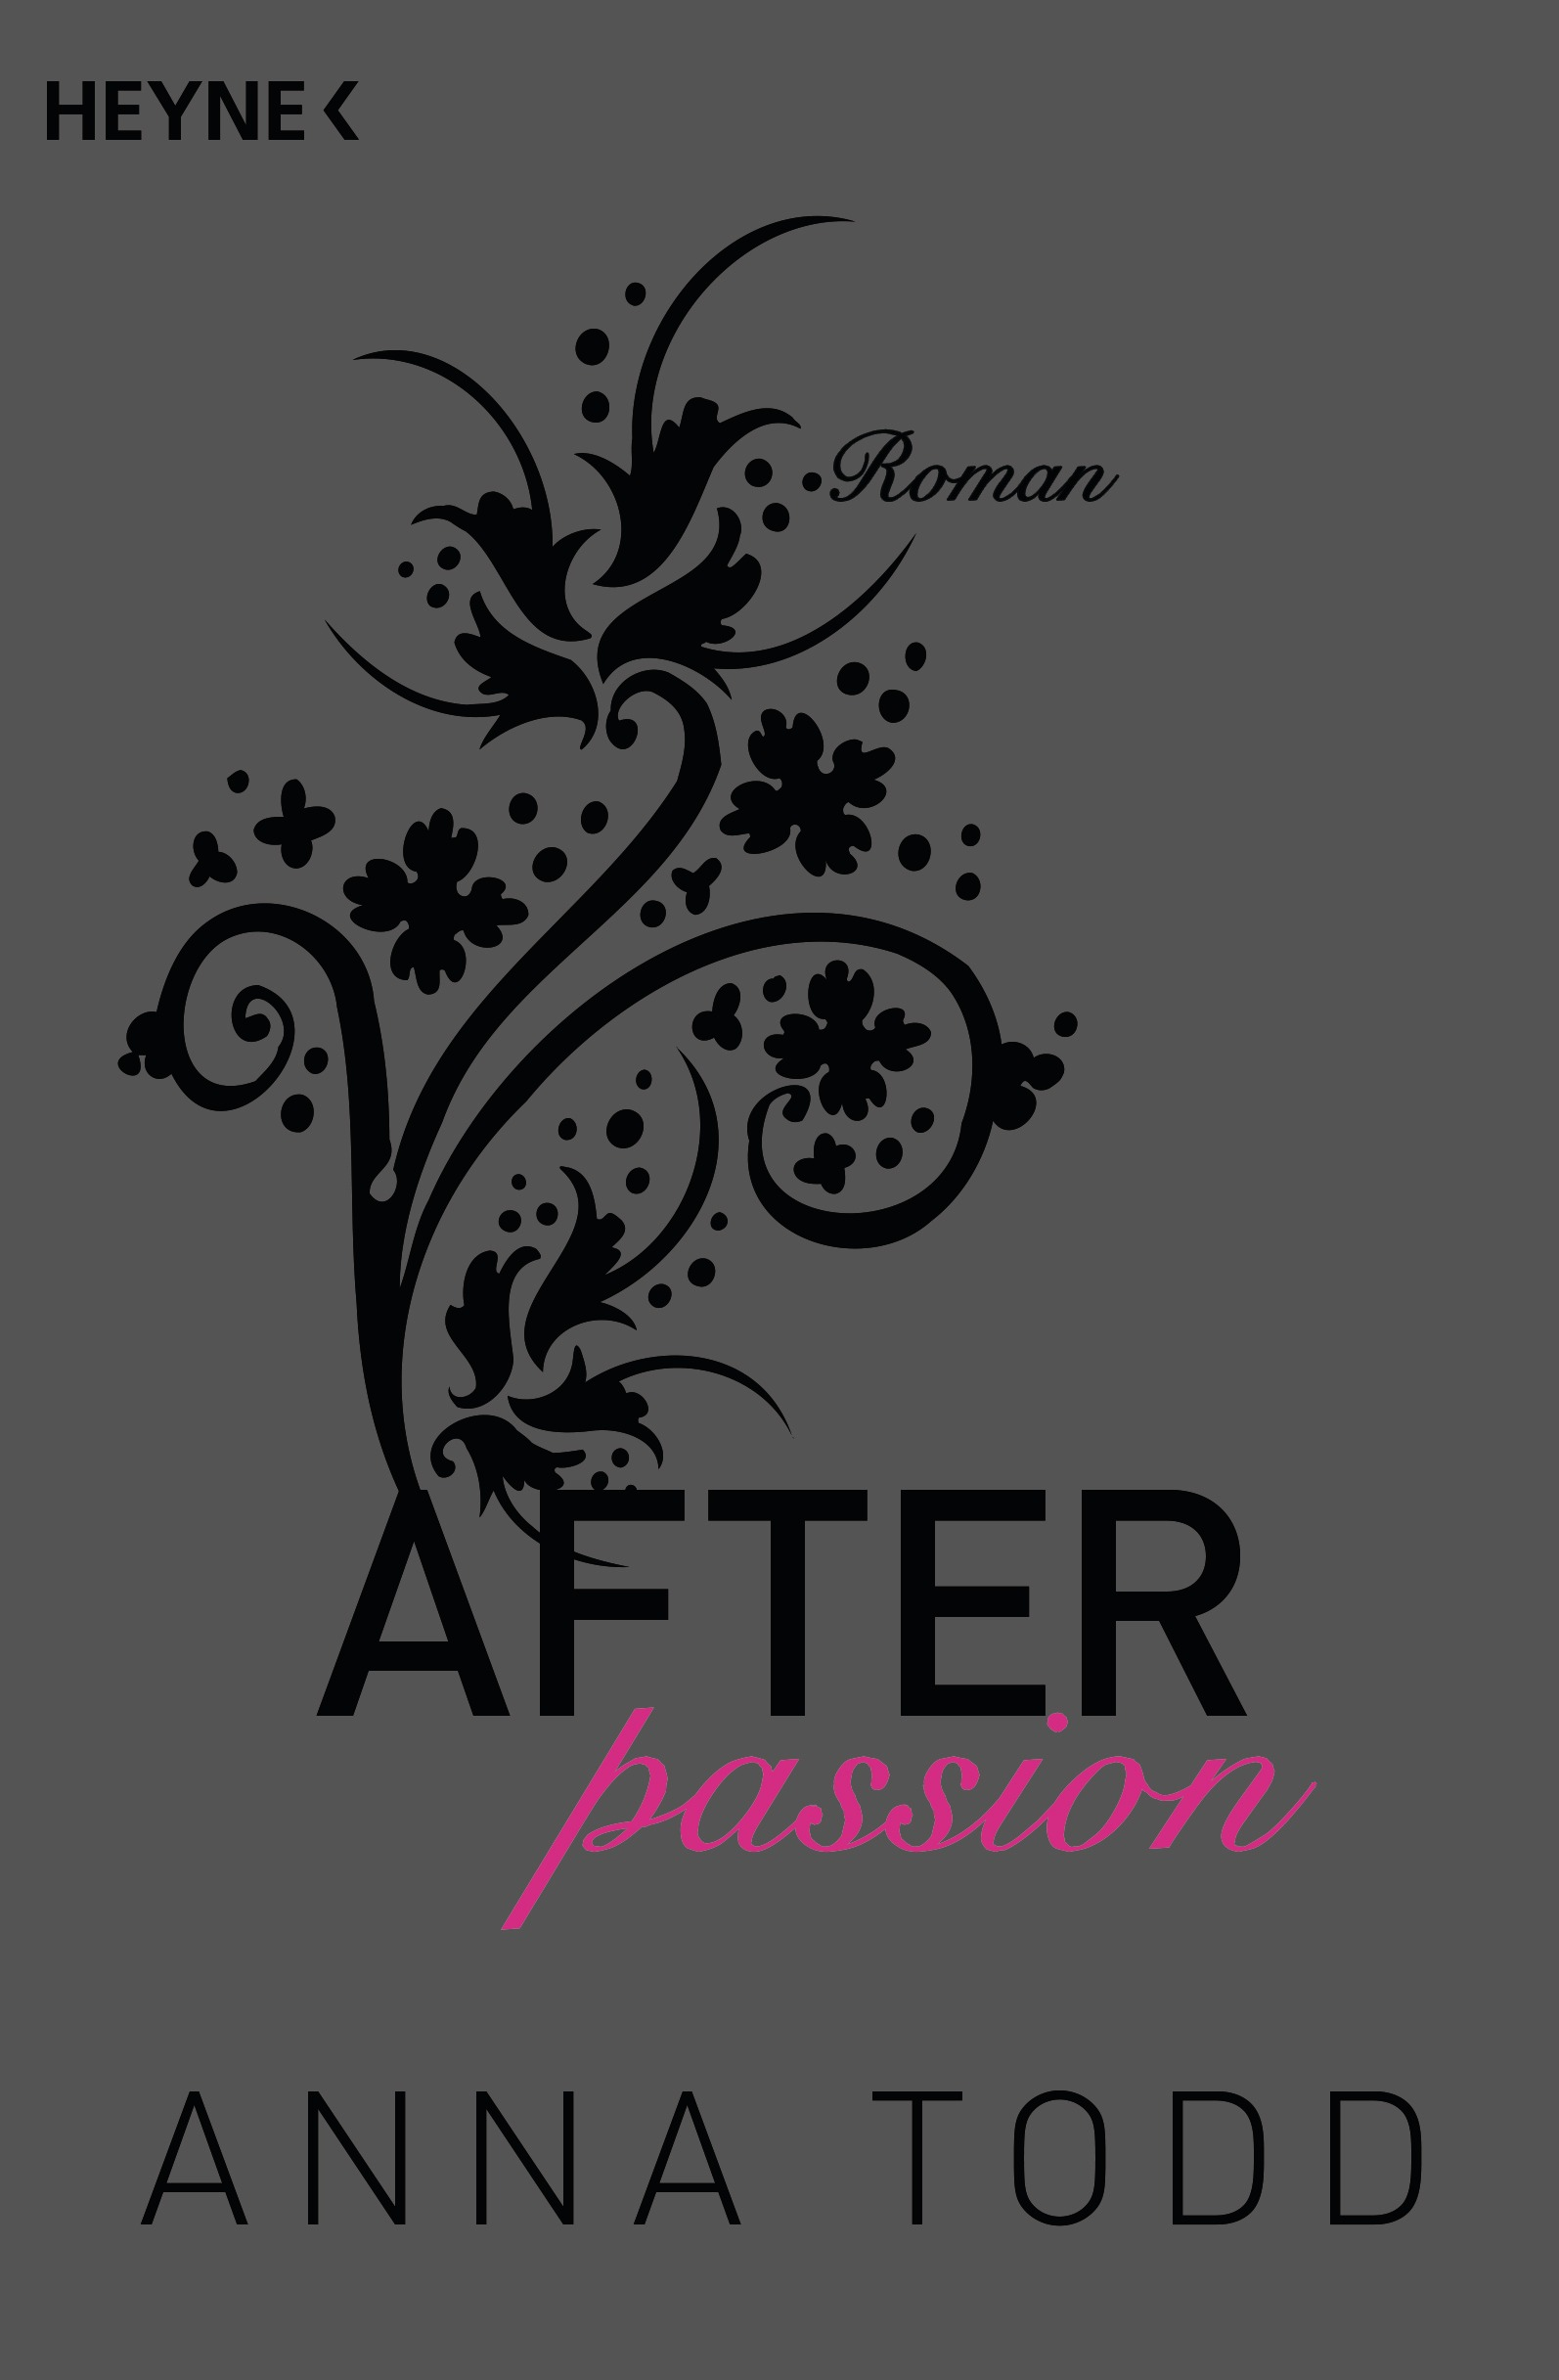 https://i1.wp.com/www.randomhouse.de/content/edition/covervoila_hires/Todd_AAfter_passion_After_1_153521.jpg